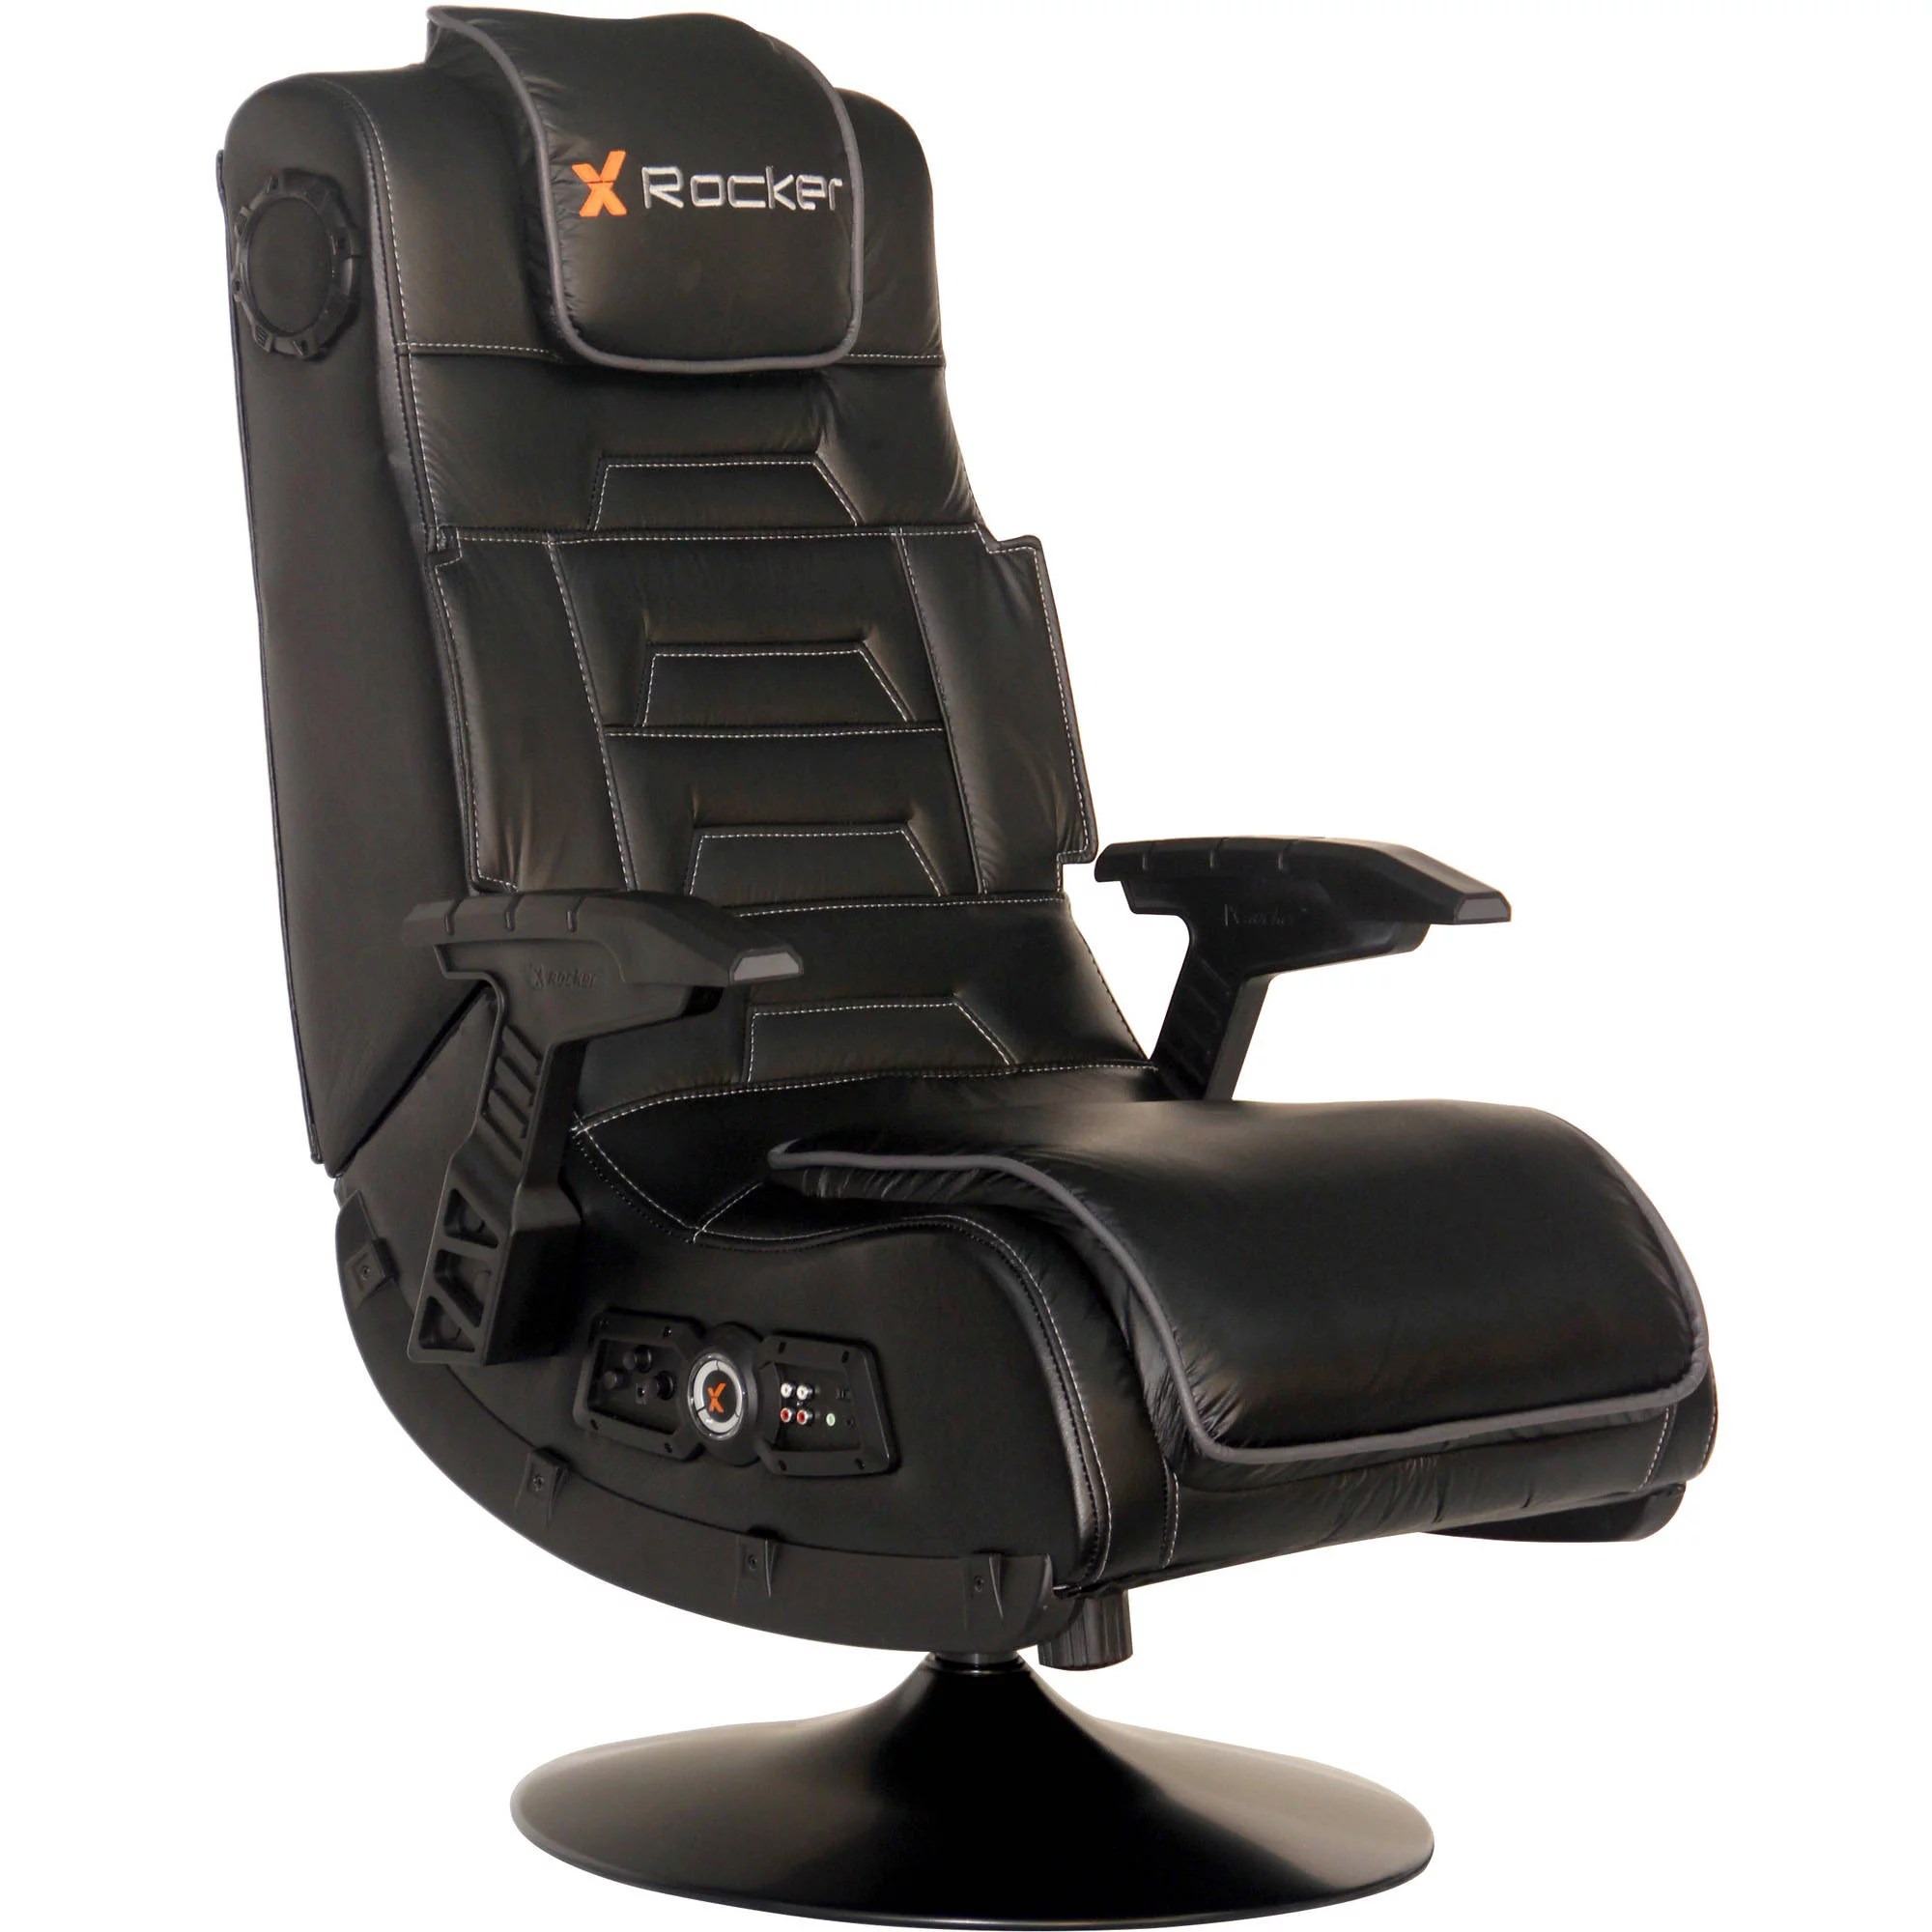 Gaming Chair With Speakers X Video Rocker Pro Series Pedestal 2 1 Wireless Audio